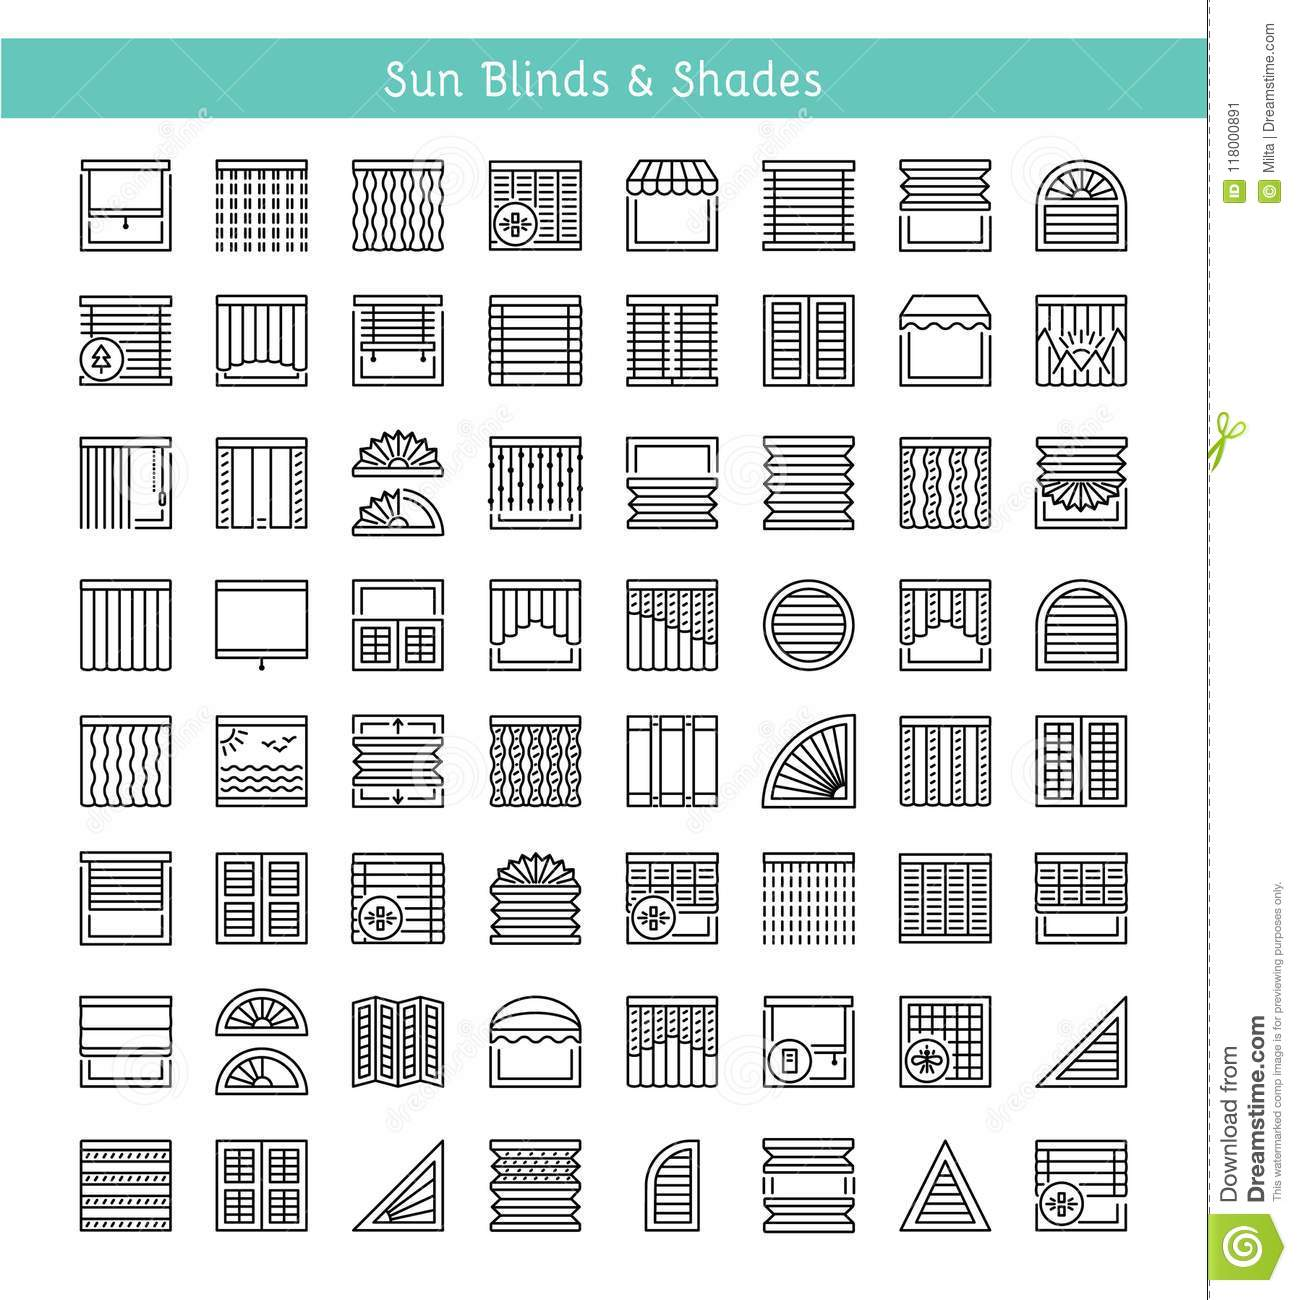 Blinds & Shades. Sun protection. Interior shutters & panel curt